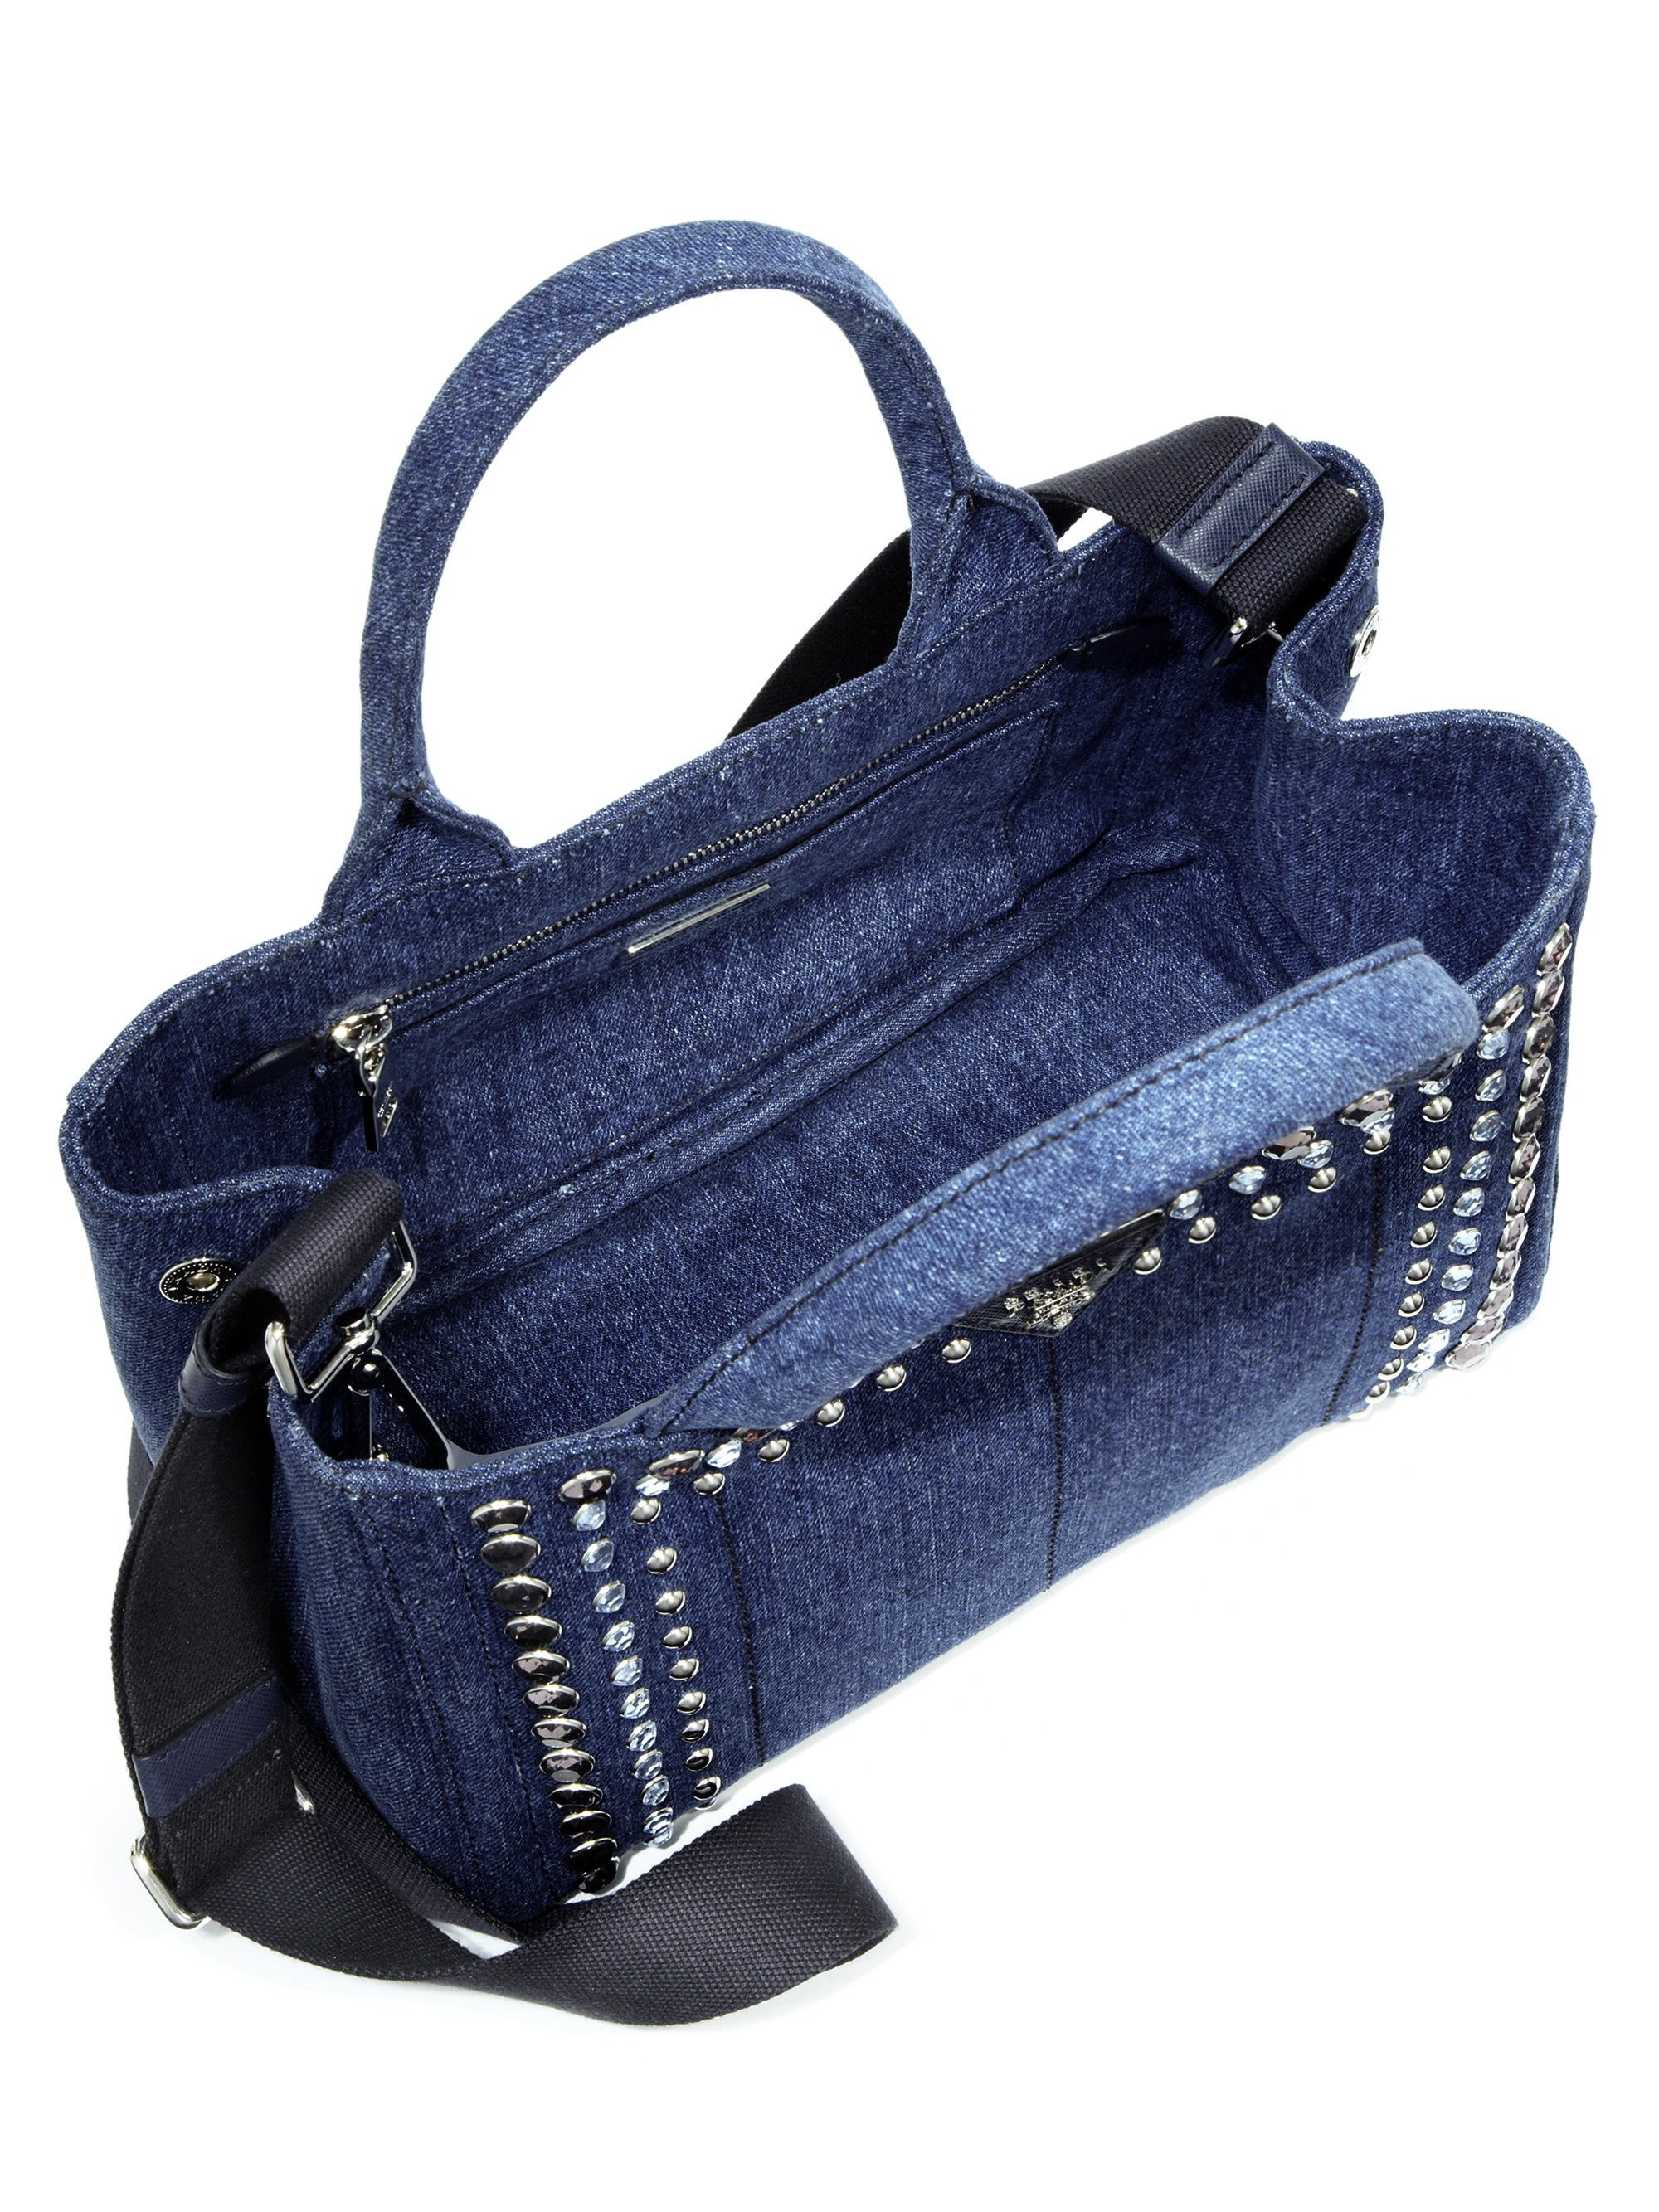 discount authentic prada bags - Prada Crystal-embellished Denim Tote in Blue (baltico-navy) | Lyst